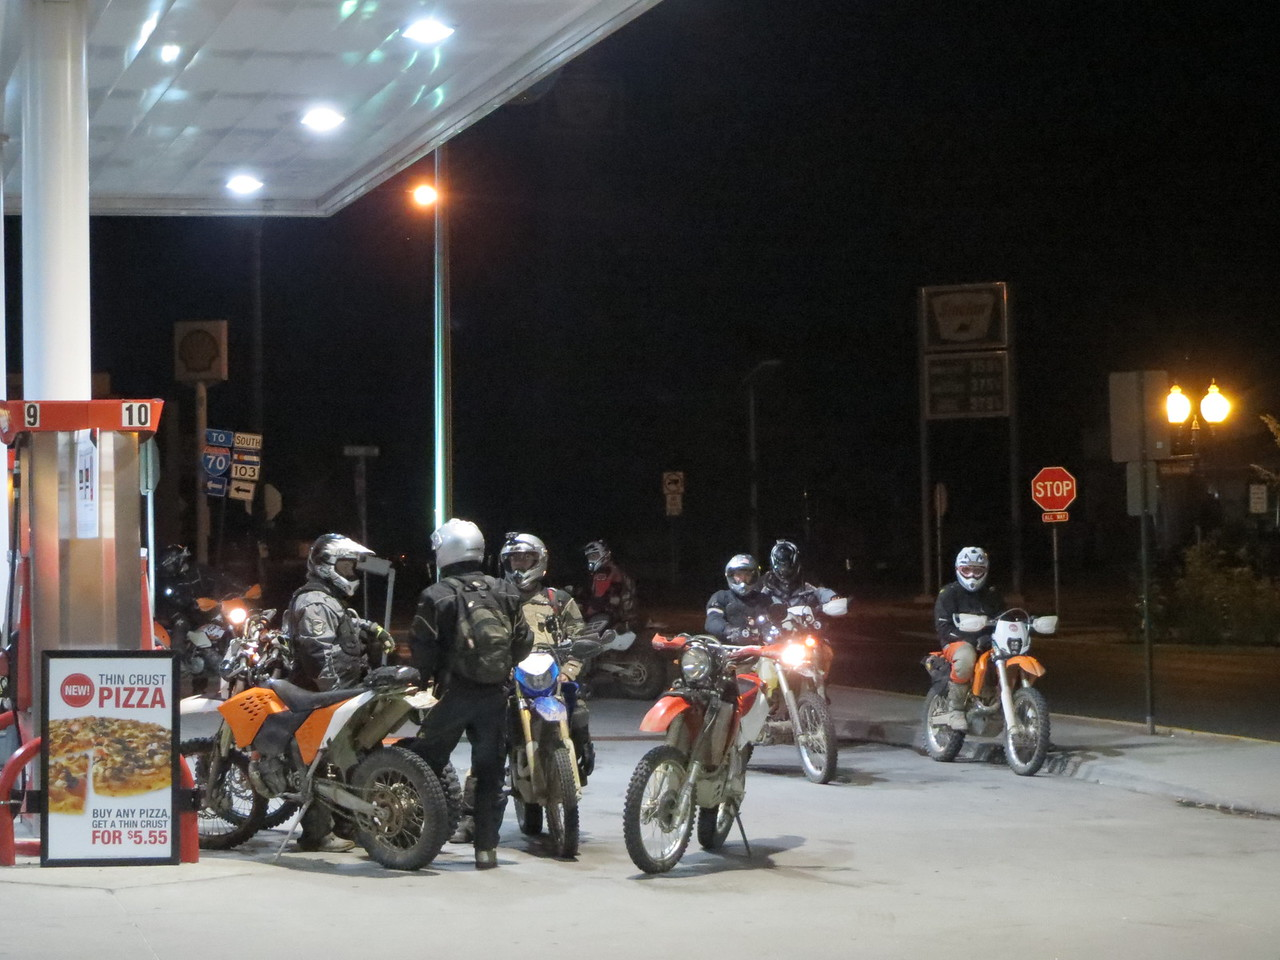 Day 5 (896 miles):  Starting on our way home now, in Idaho Springs CO, we saw this group of dirt bikers getting ready for a night ride.